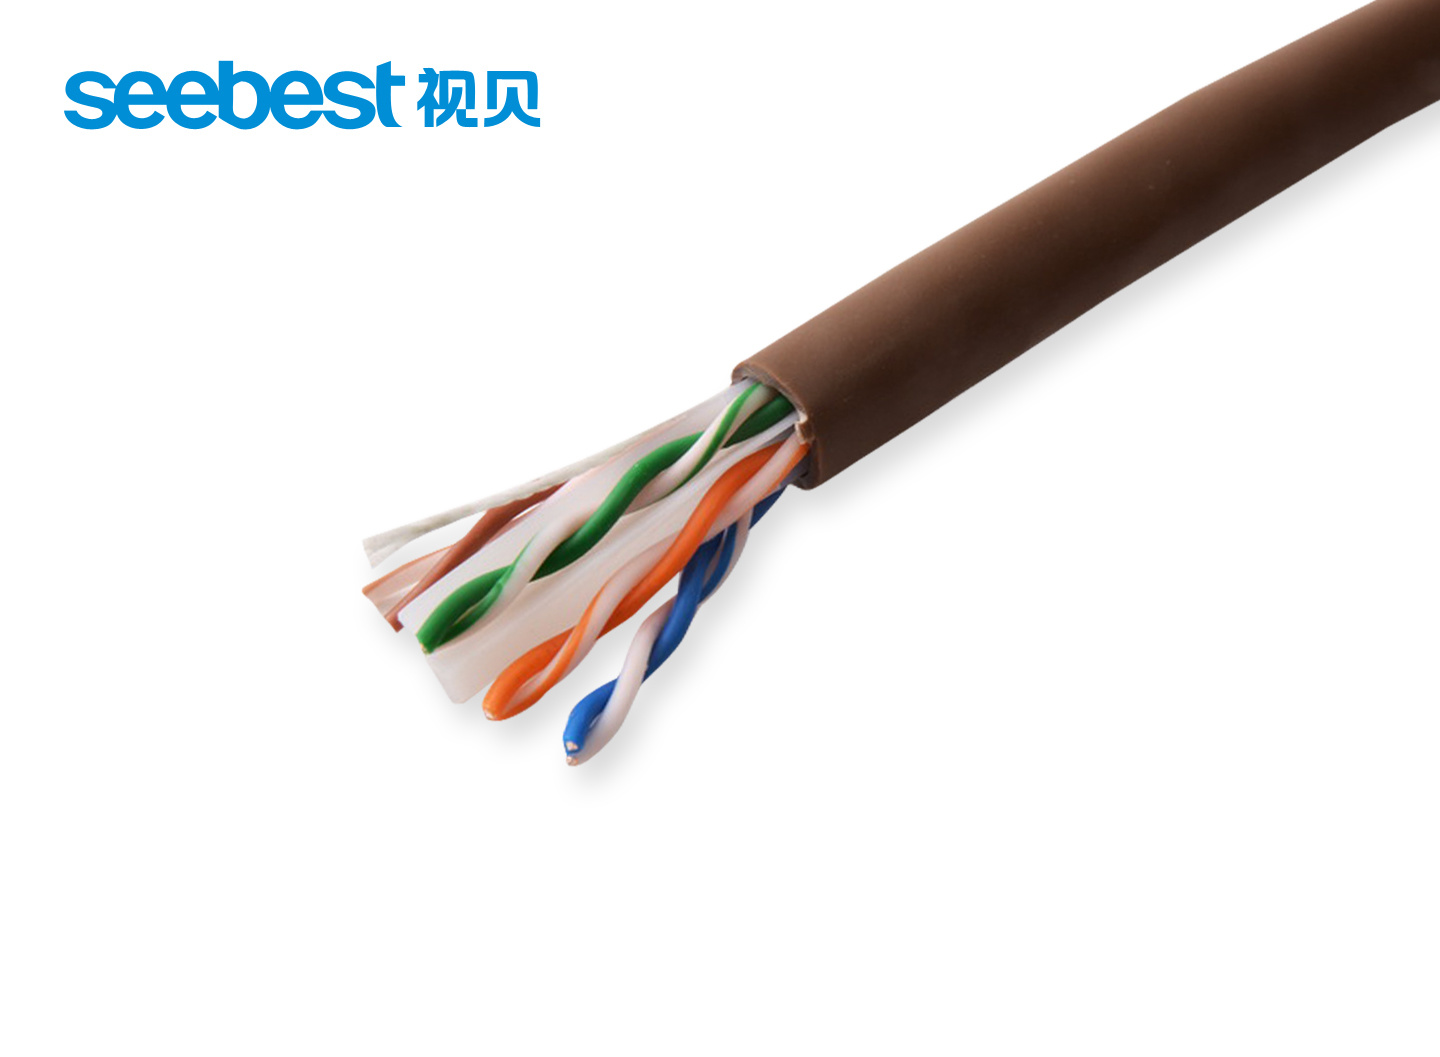 Wholesale High Quality Cat5 Cat5e CAT6 Network Cable Conduit